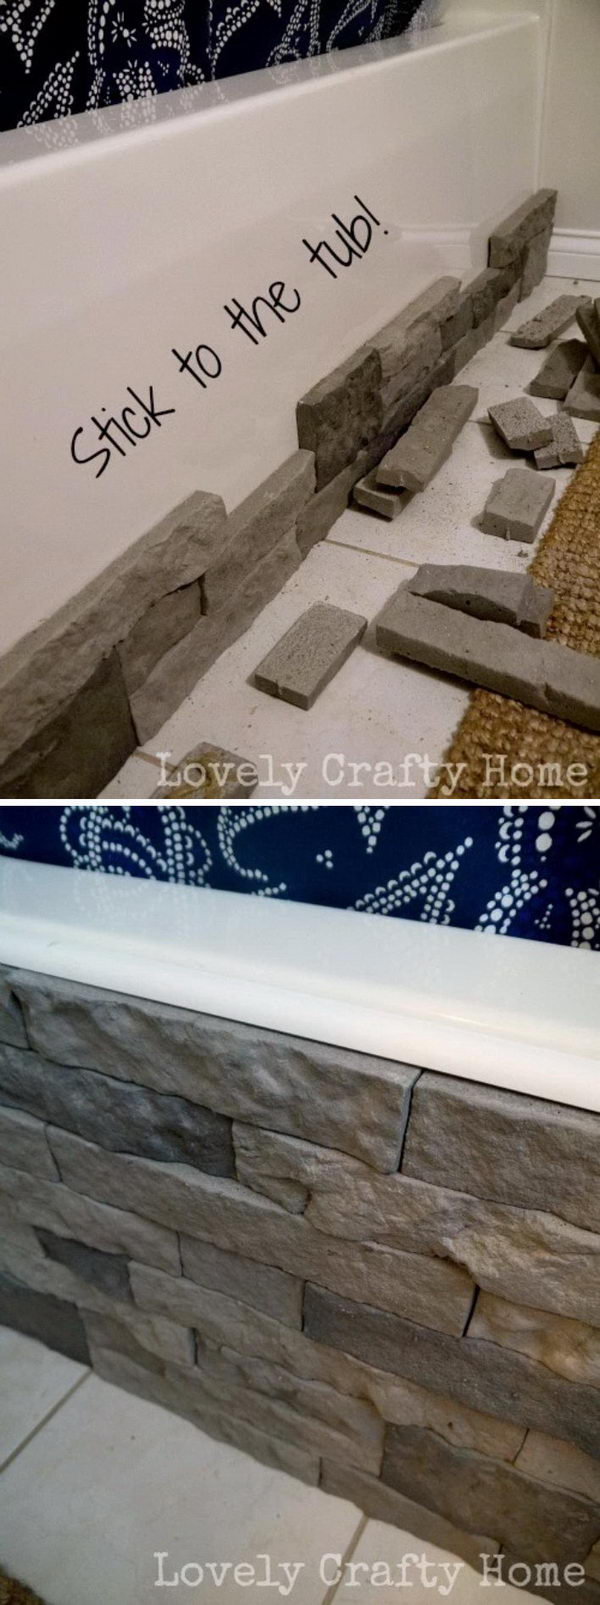 Cover An Ugly Bathtub With Faux Stone